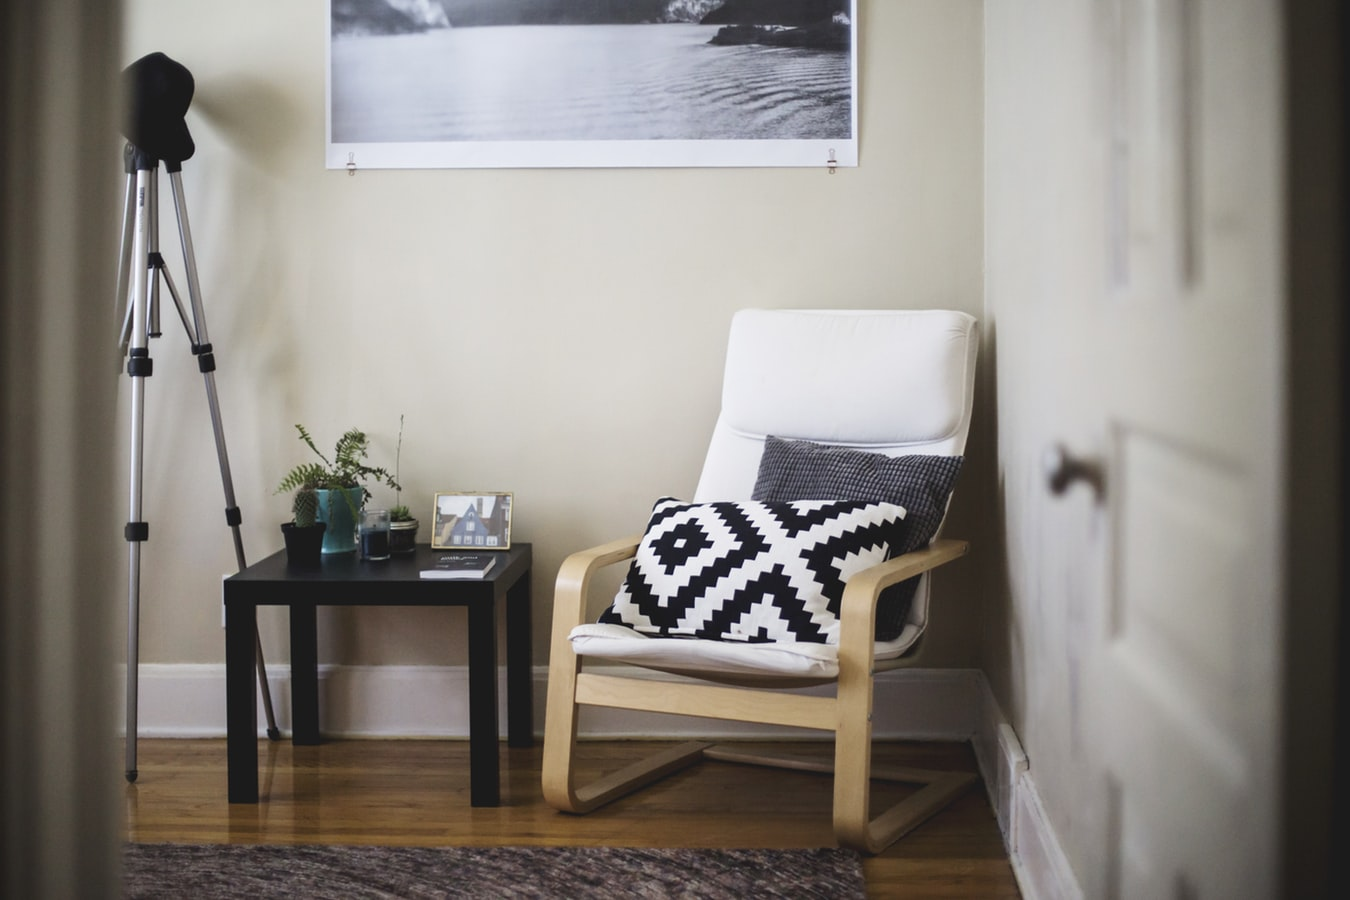 5 must-haves for decorating a student flat in Edinburgh